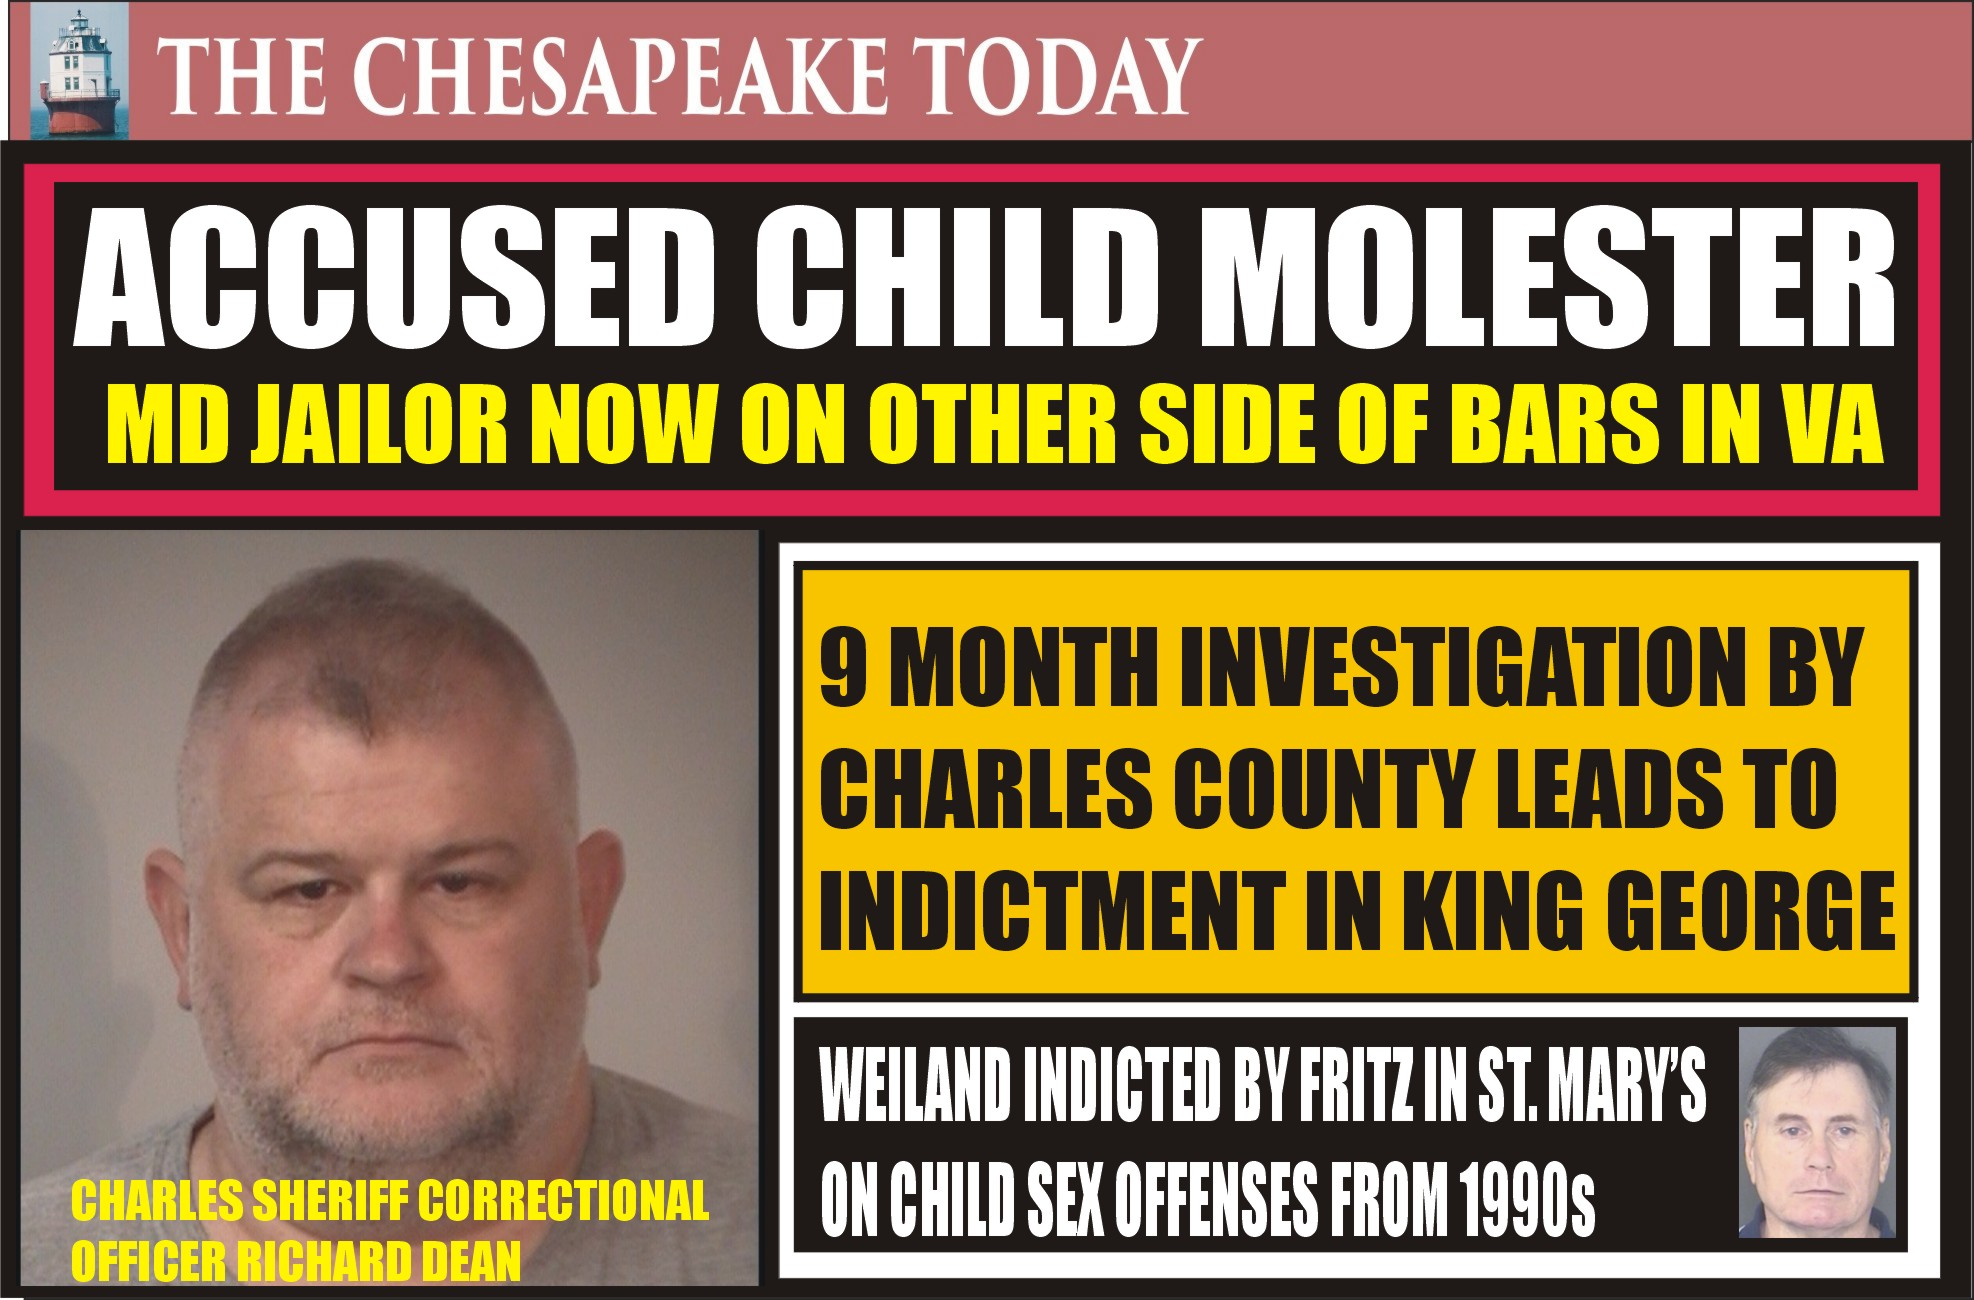 CHILD SEX CHARGES: CHARLES SHERIFF CORRECTIONAL OFFICER RICHARD DEAN FACES CHILD MOLESTER CHARGES; ST. MARY'S PROSECUTOR RICHARD FRITZ INDICTS ALLEN WEILAND ON CHILD SEX OFFENCES FROM the 1990s